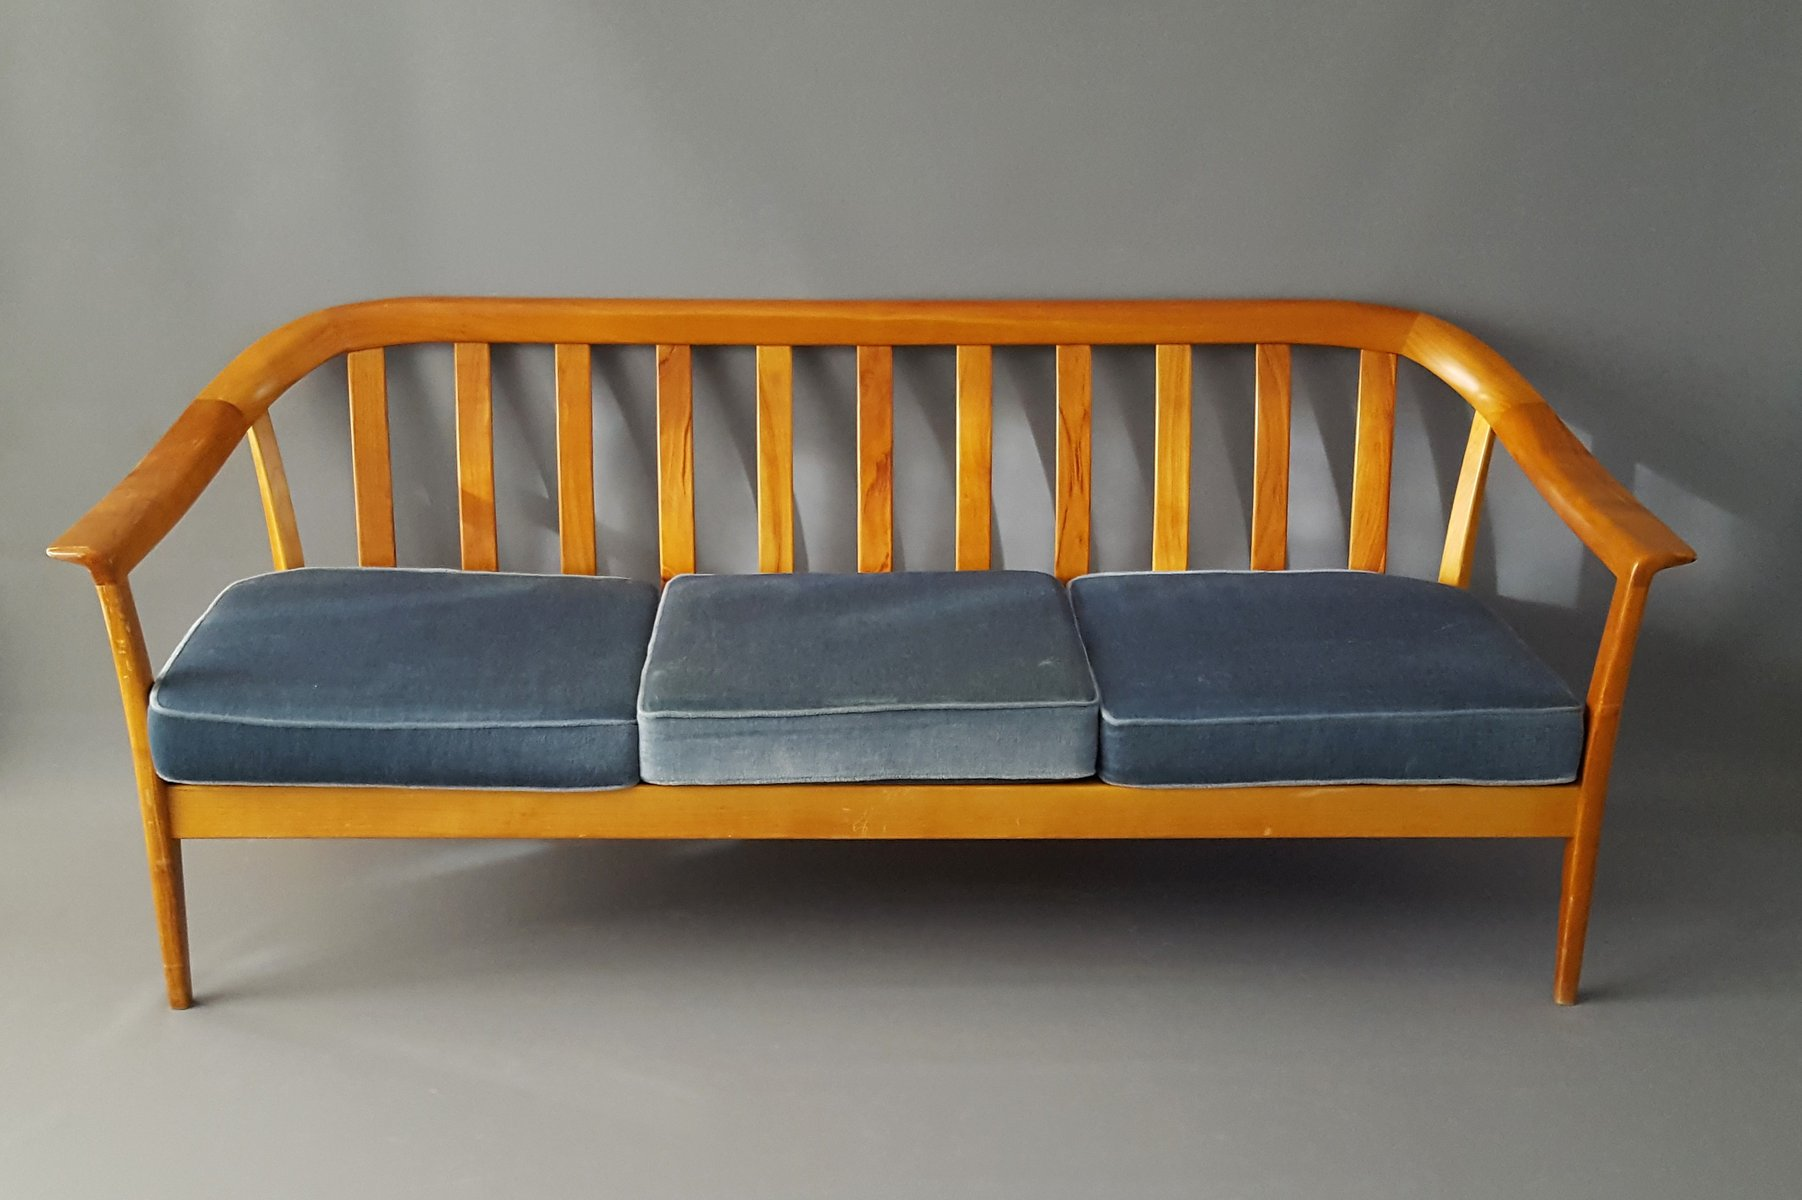 Vintage Sofa From Wilhelm Knoll 1960s For Sale At Pamono